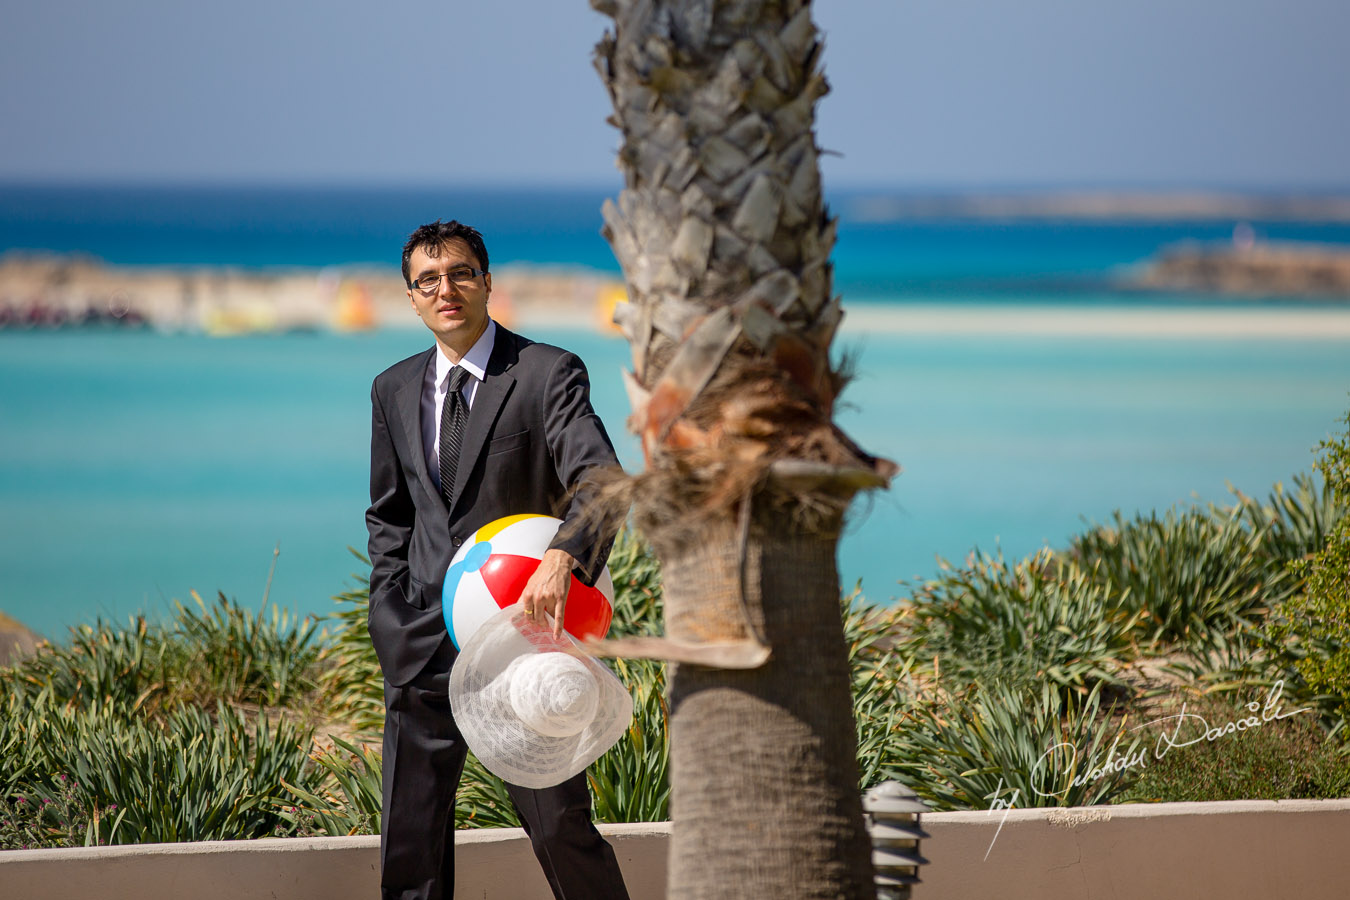 Ayia Napa Wedding Photographer - Cristian Dascalu